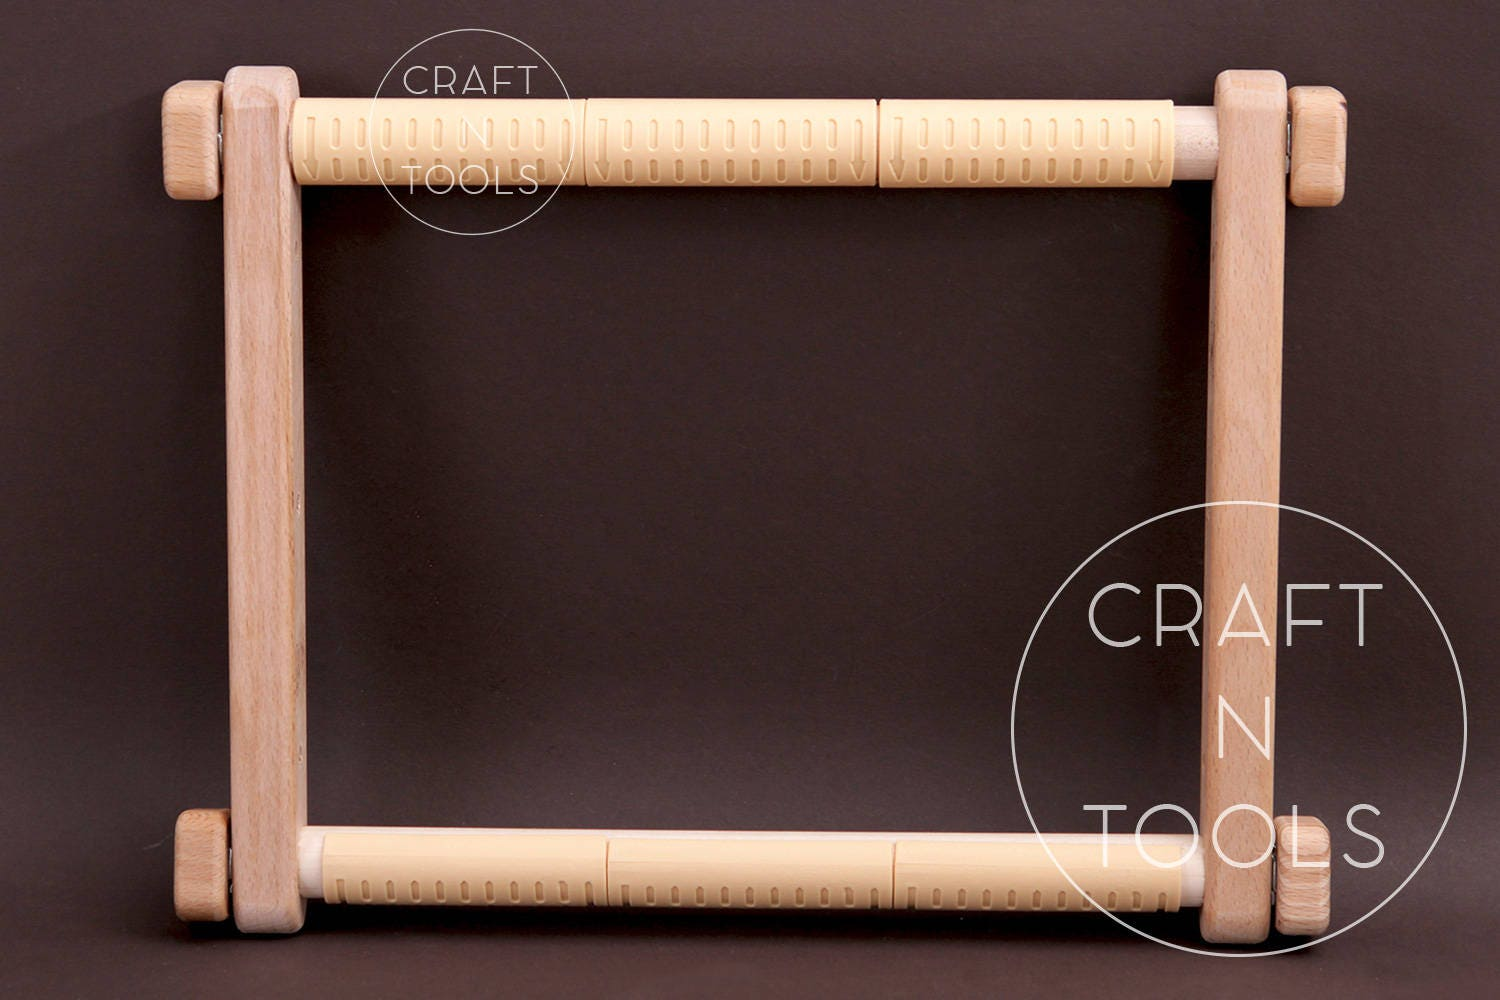 Embroidery Frame/Beading Hoop/Cross Stitch Frame/Wooden Hoop ...